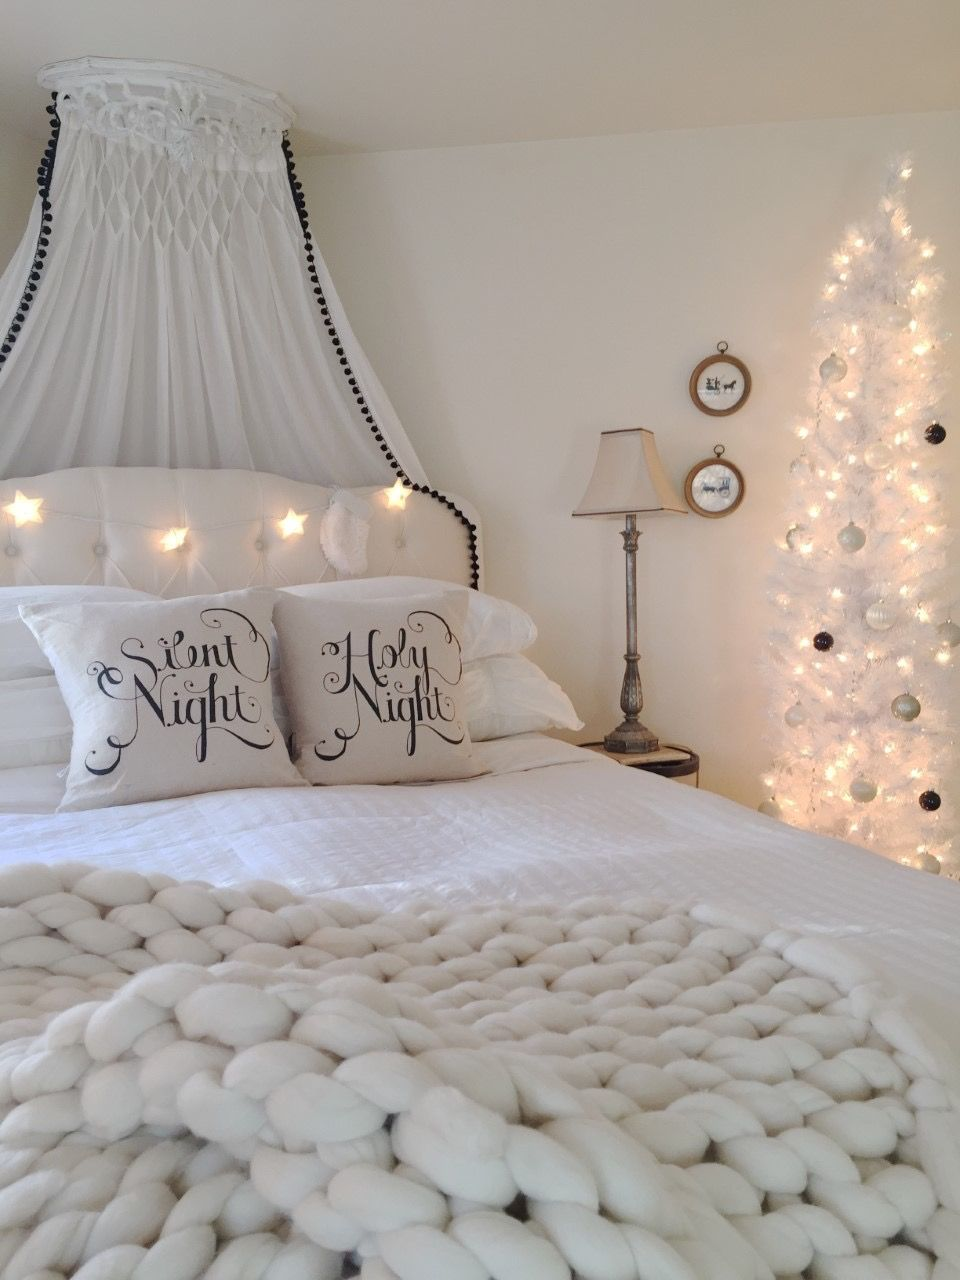 10 Neutral Christmas Decor Ideas & Inspiration